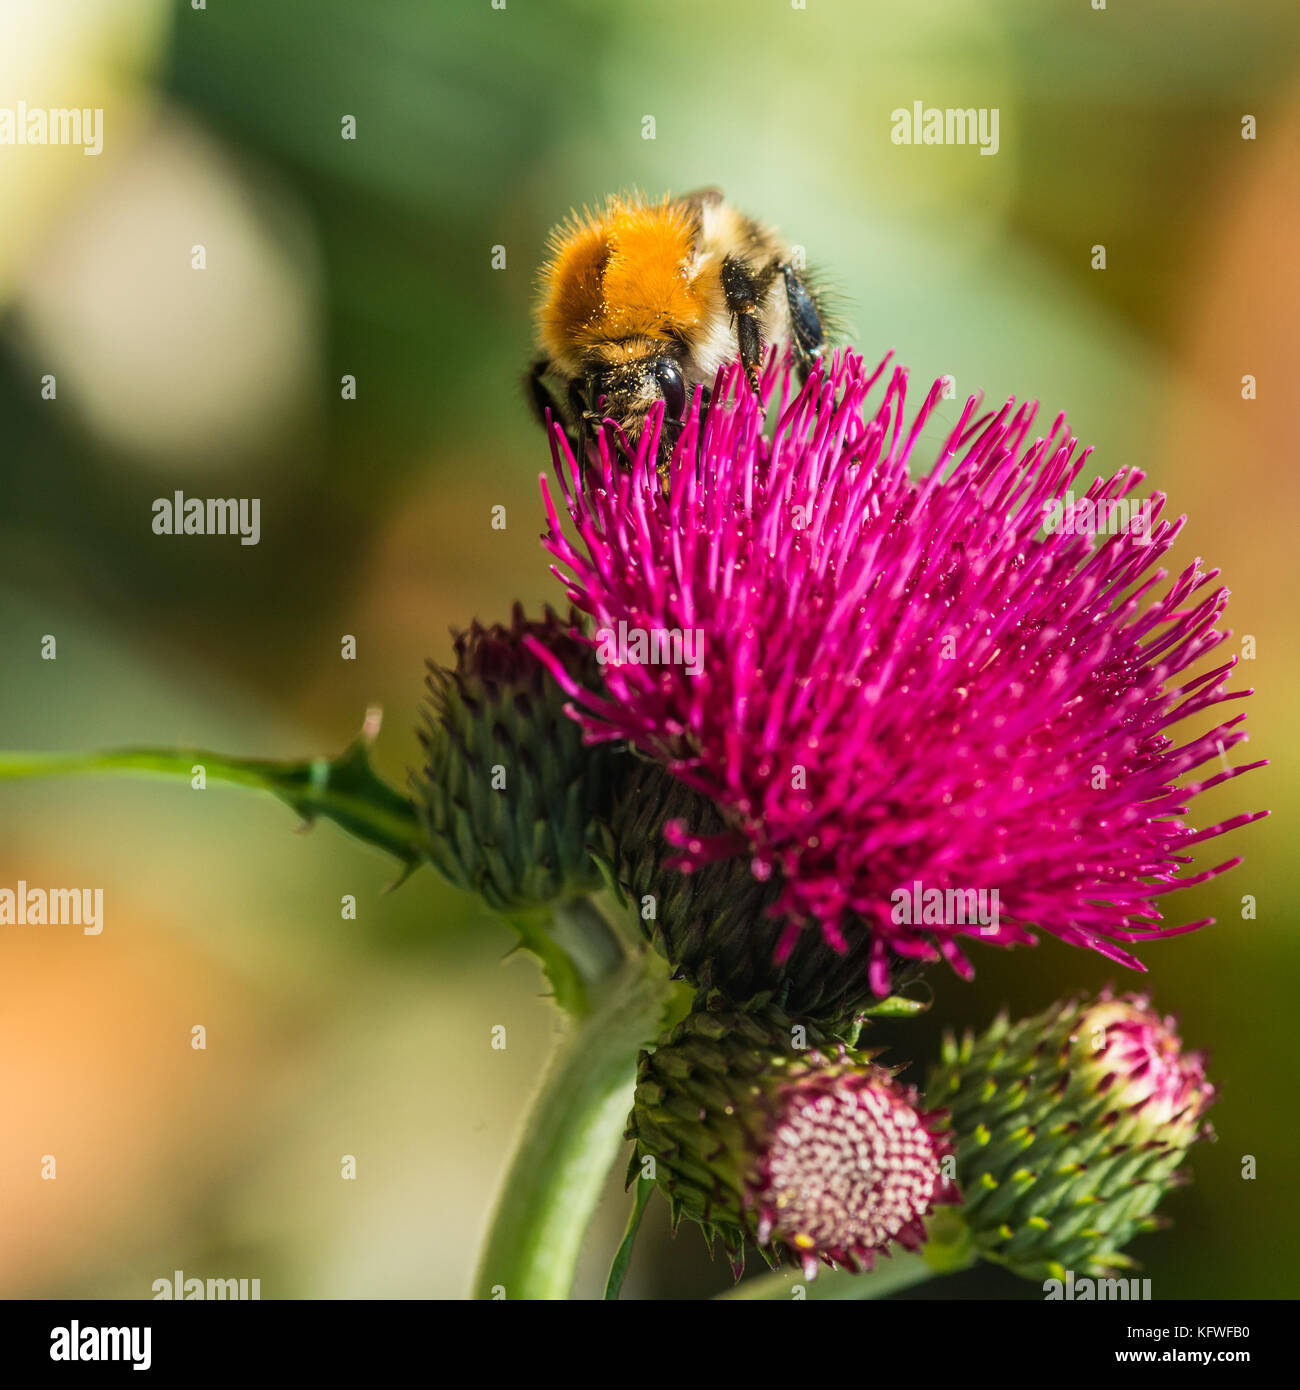 A macro shot of a common carder bee collecting pollen from a cirsium bloom. - Stock Image